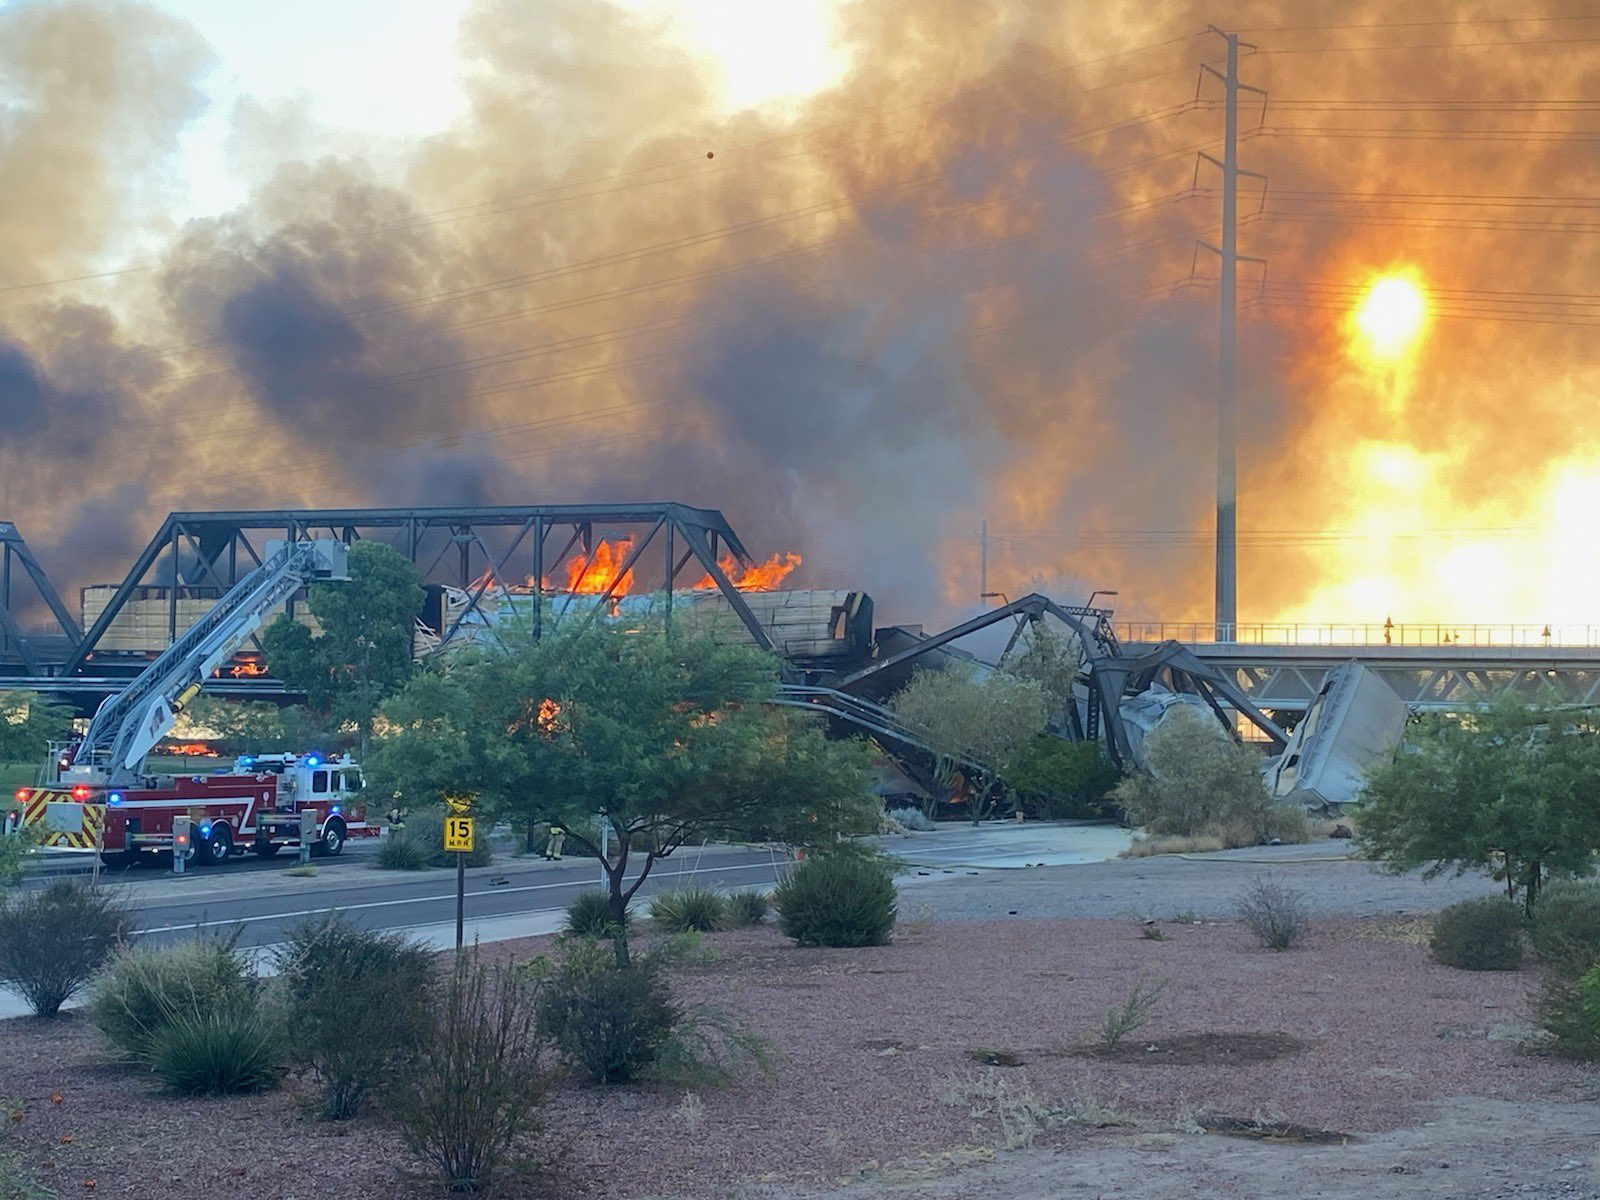 Arizona train derailment and fire